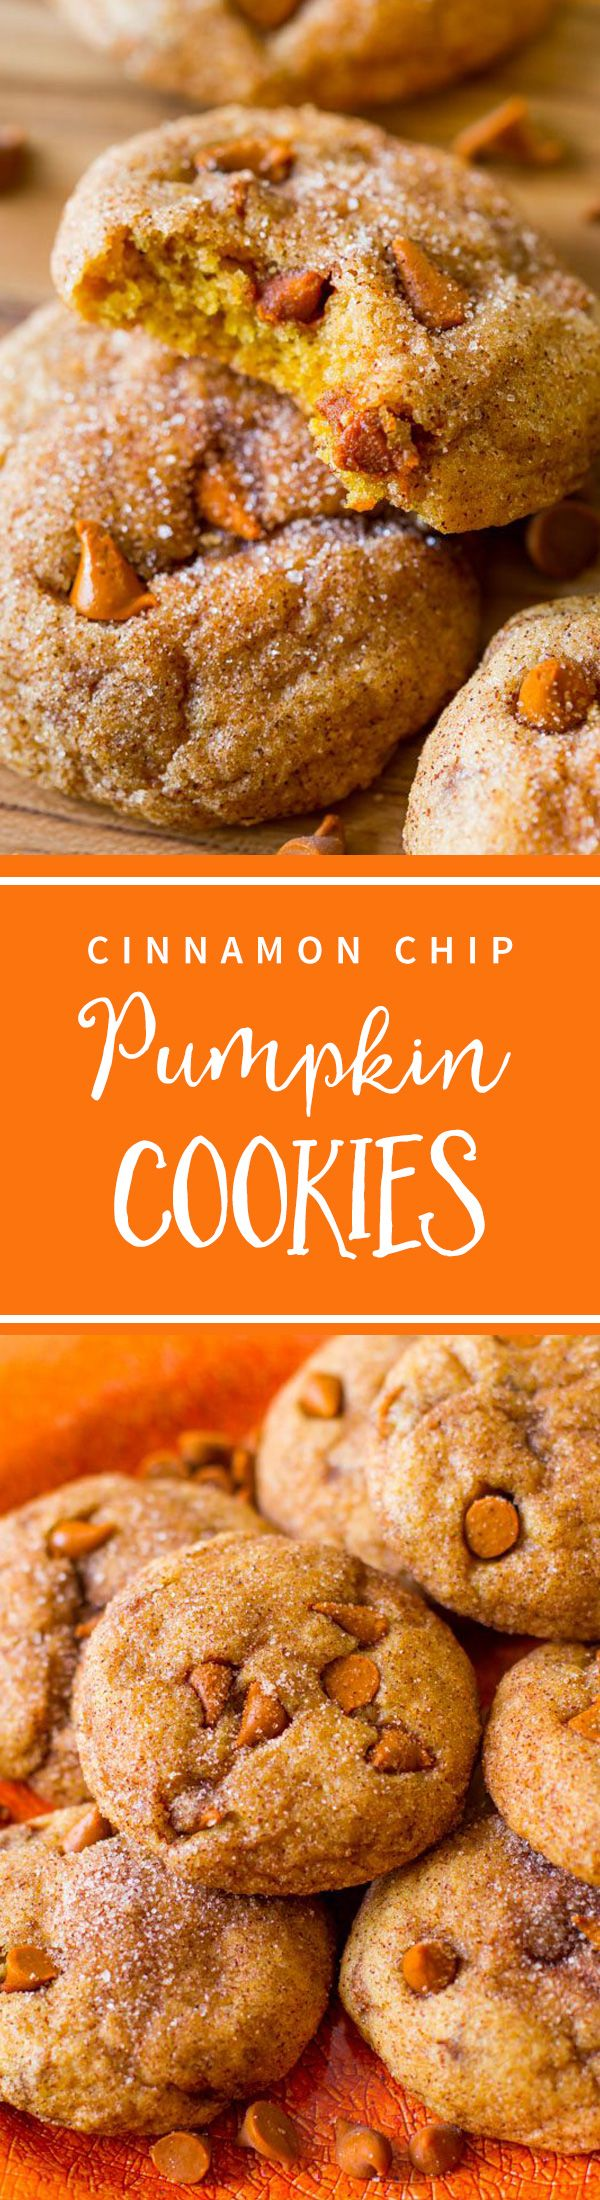 Cinnamon Chip Pumpkin Cookies have unbeatable spiced pumpkin flavor-- so easy with no mixer! Chewy, not cakey! Recipe at sallysbakingaddiction.com